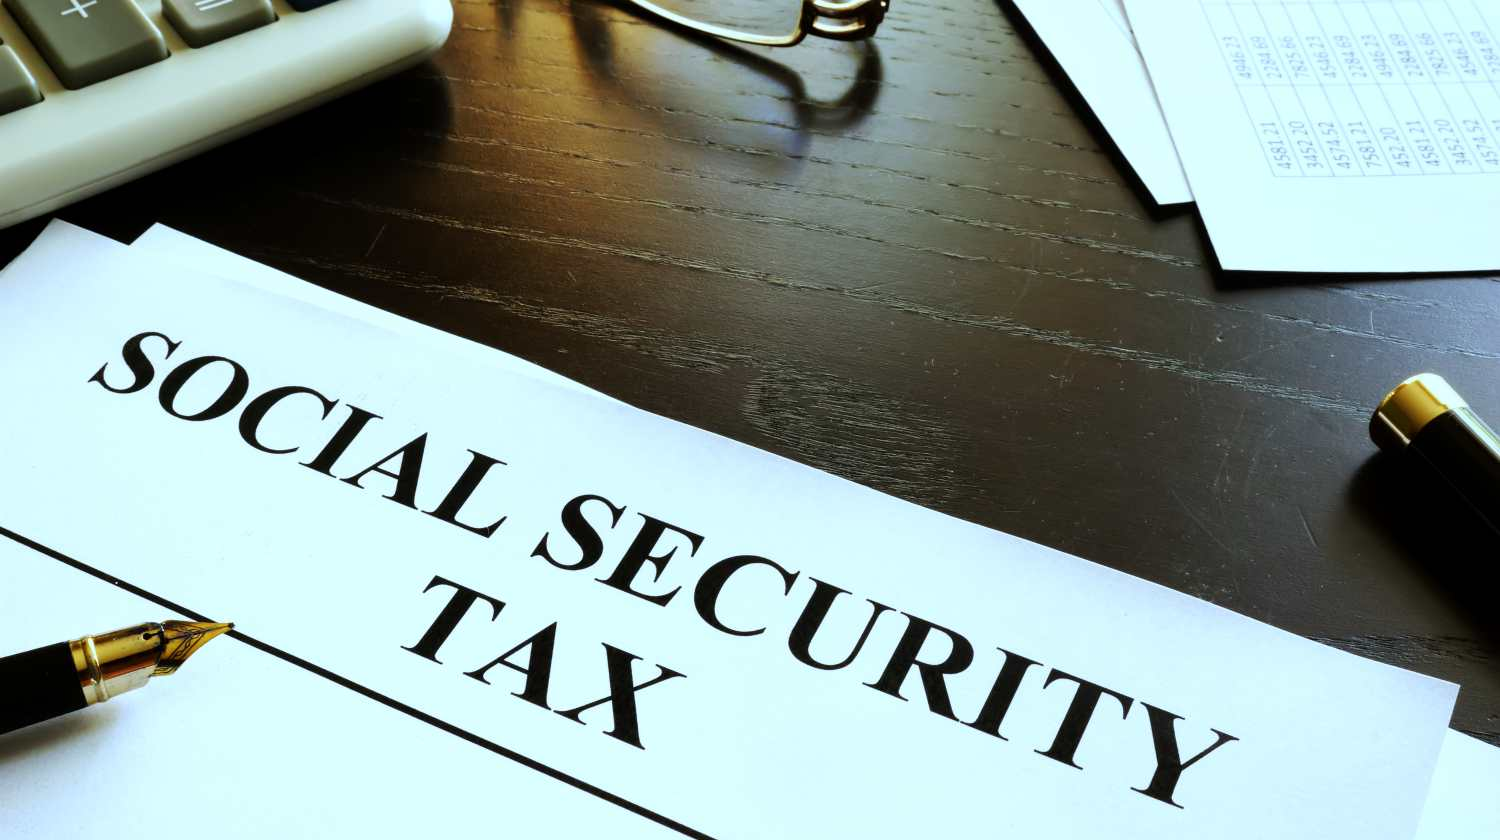 Feature | Social Security Tax written on paper | Social Security Tax: What Is It for and How Much Do I Pay for It | social security tax limit